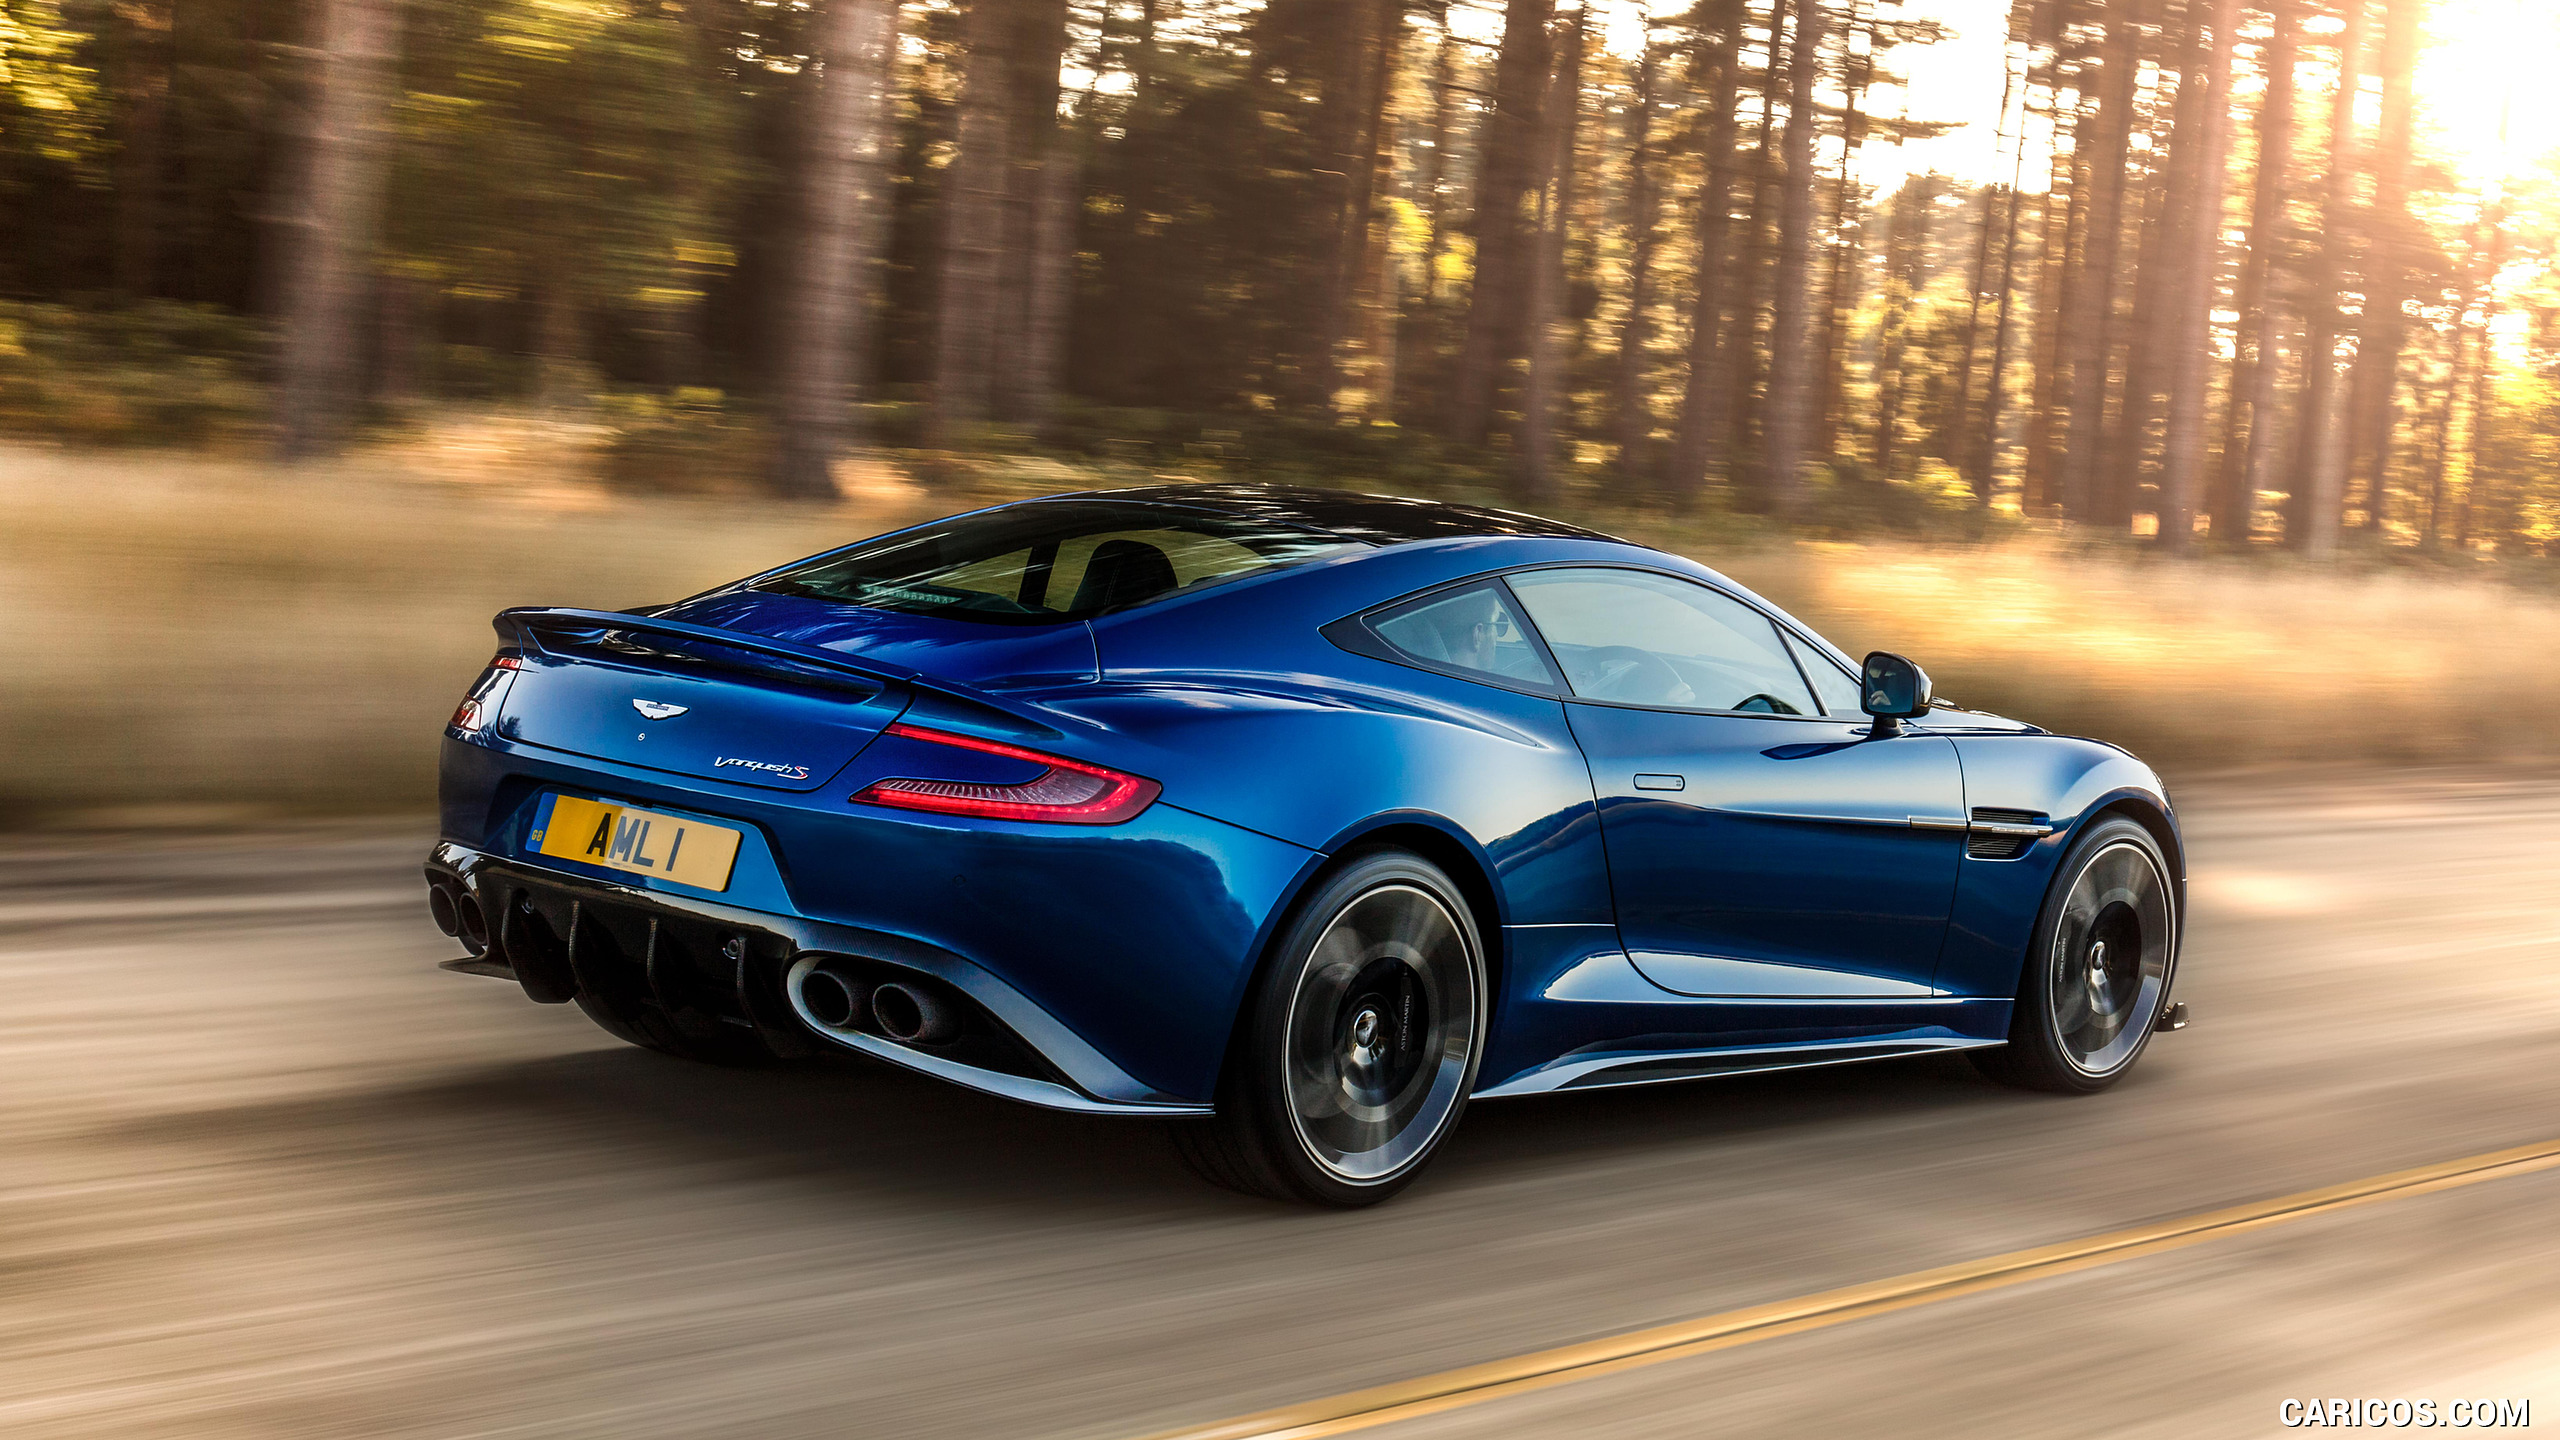 2017 Aston Martin Vanquish S   Rear Three Quarter HD Wallpaper 3 2560x1440